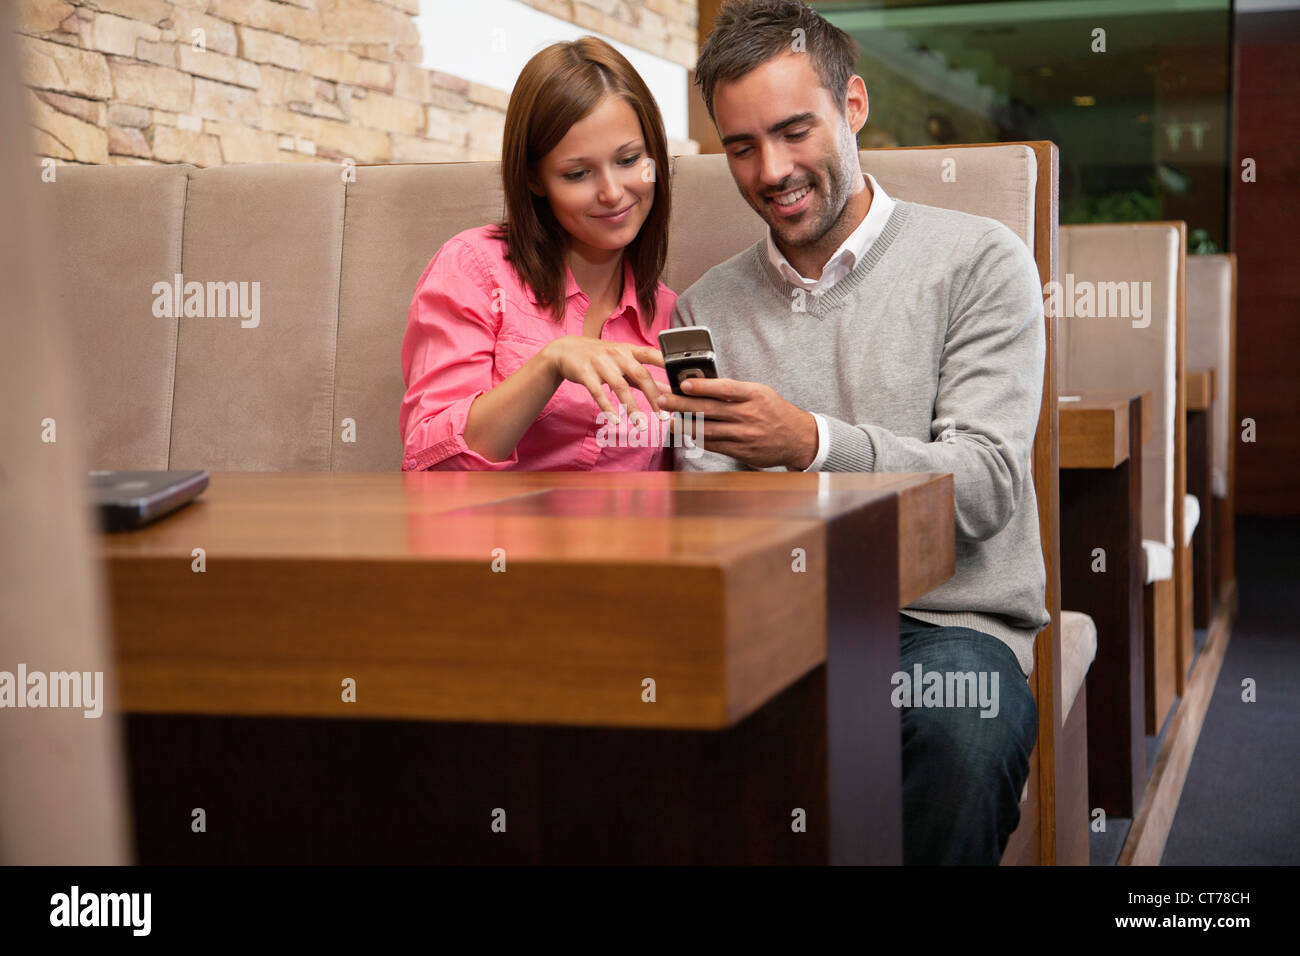 young couple looking at display of mobile phone at restaurant - Stock Image